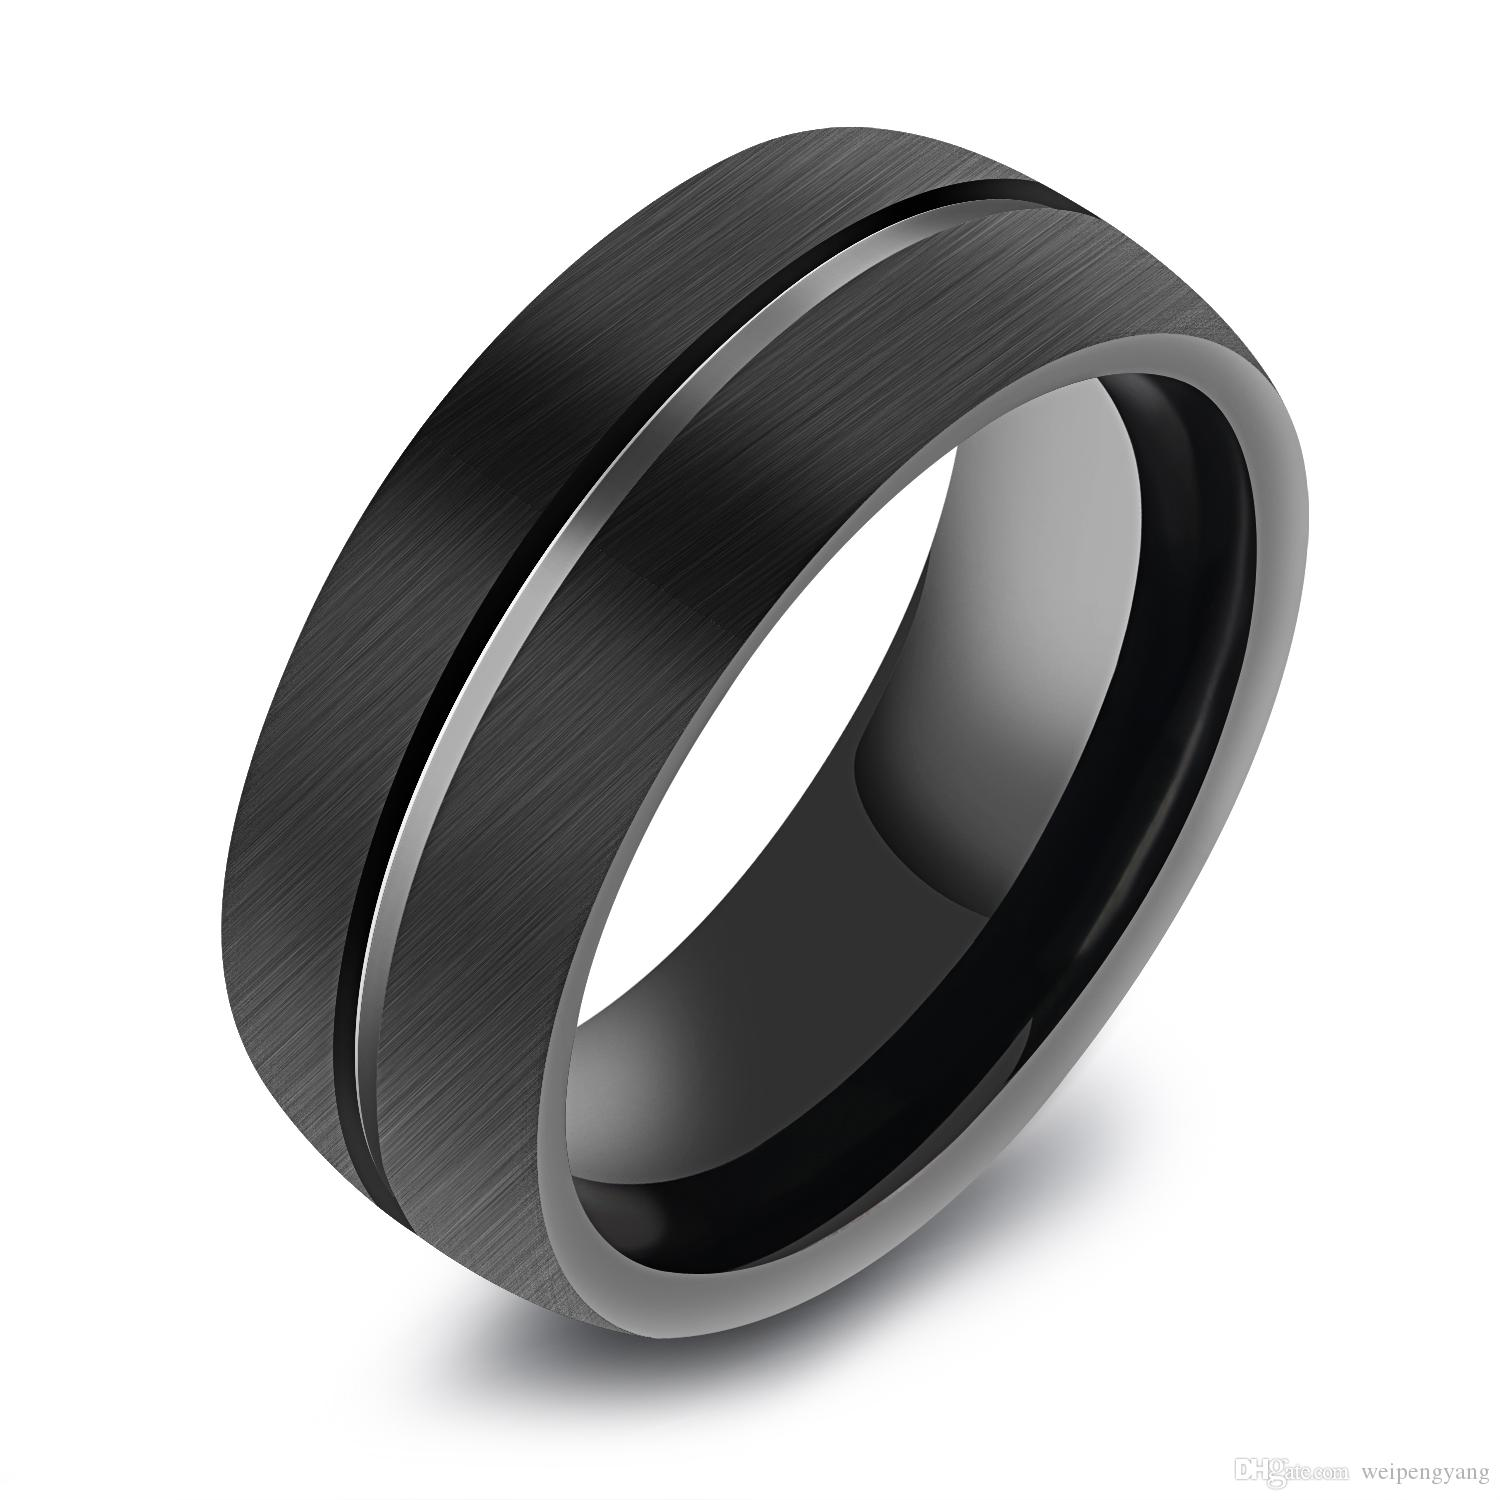 ring tungsten brushed band surface black manly unique rings rockstar wedding the matte spo products bands